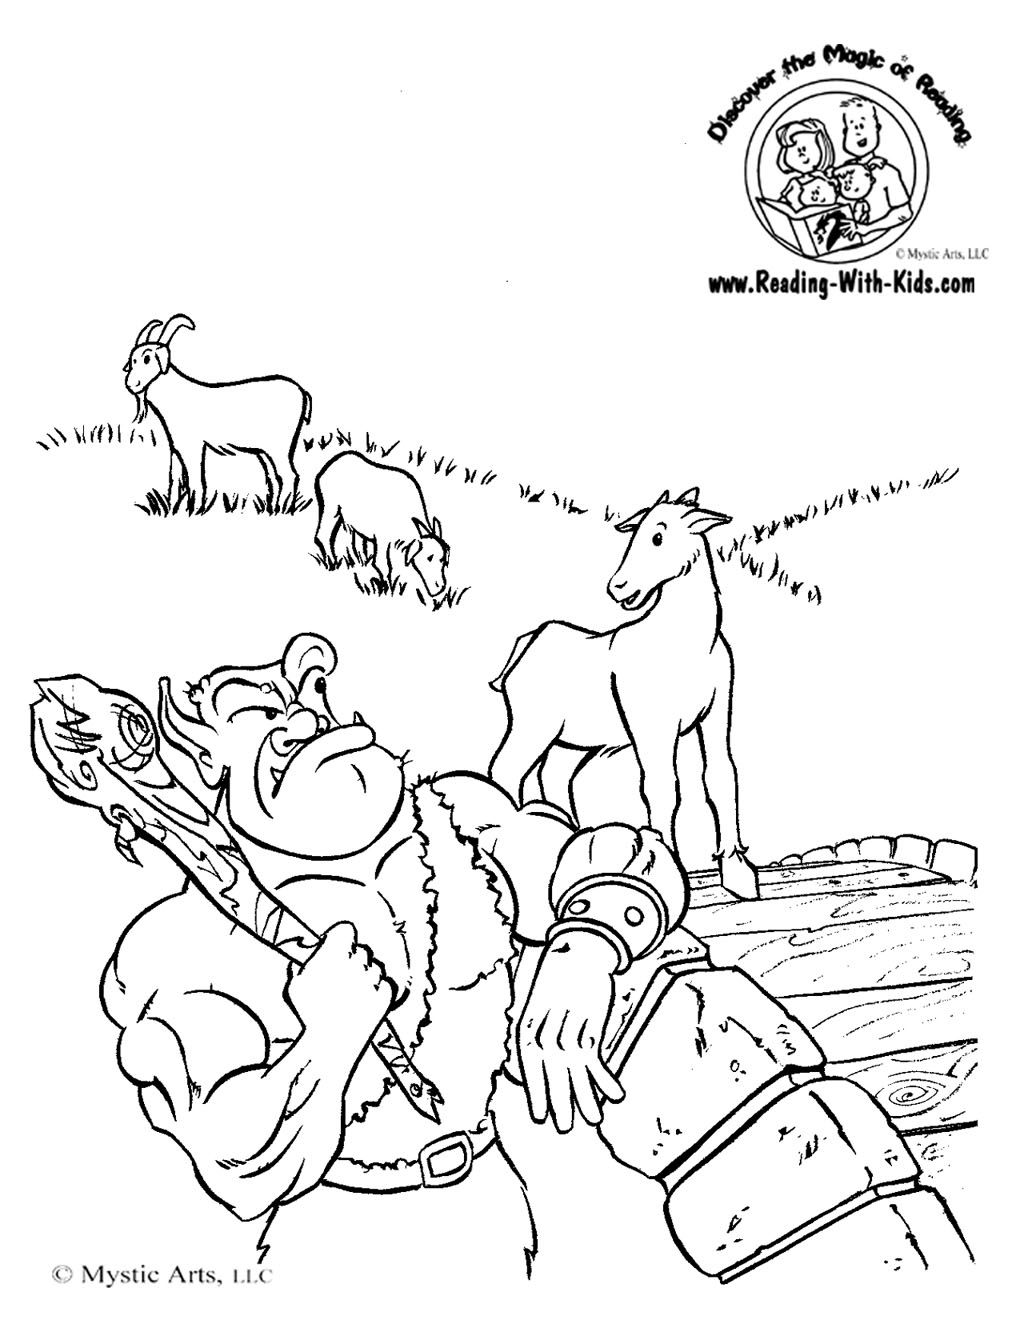 three billy goat gruff coloring pages | Three Billy Goats Gruff Coloring Sheet #FairyTale # ...